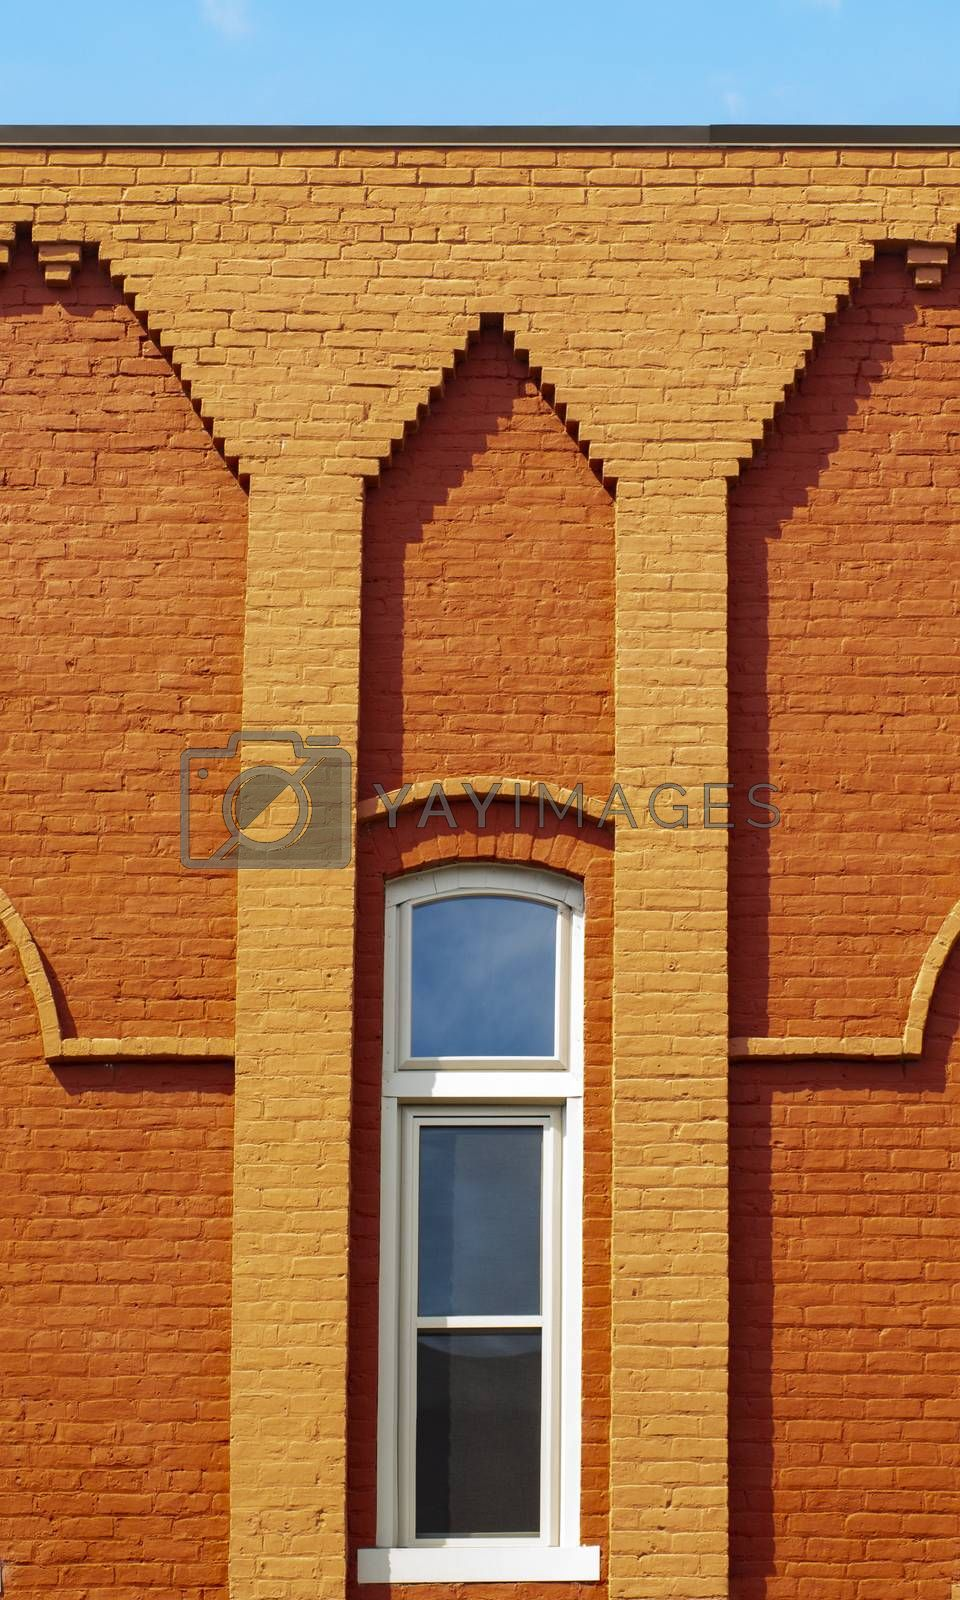 Small Town Decorative Brick Buildings by Charlie Floyd